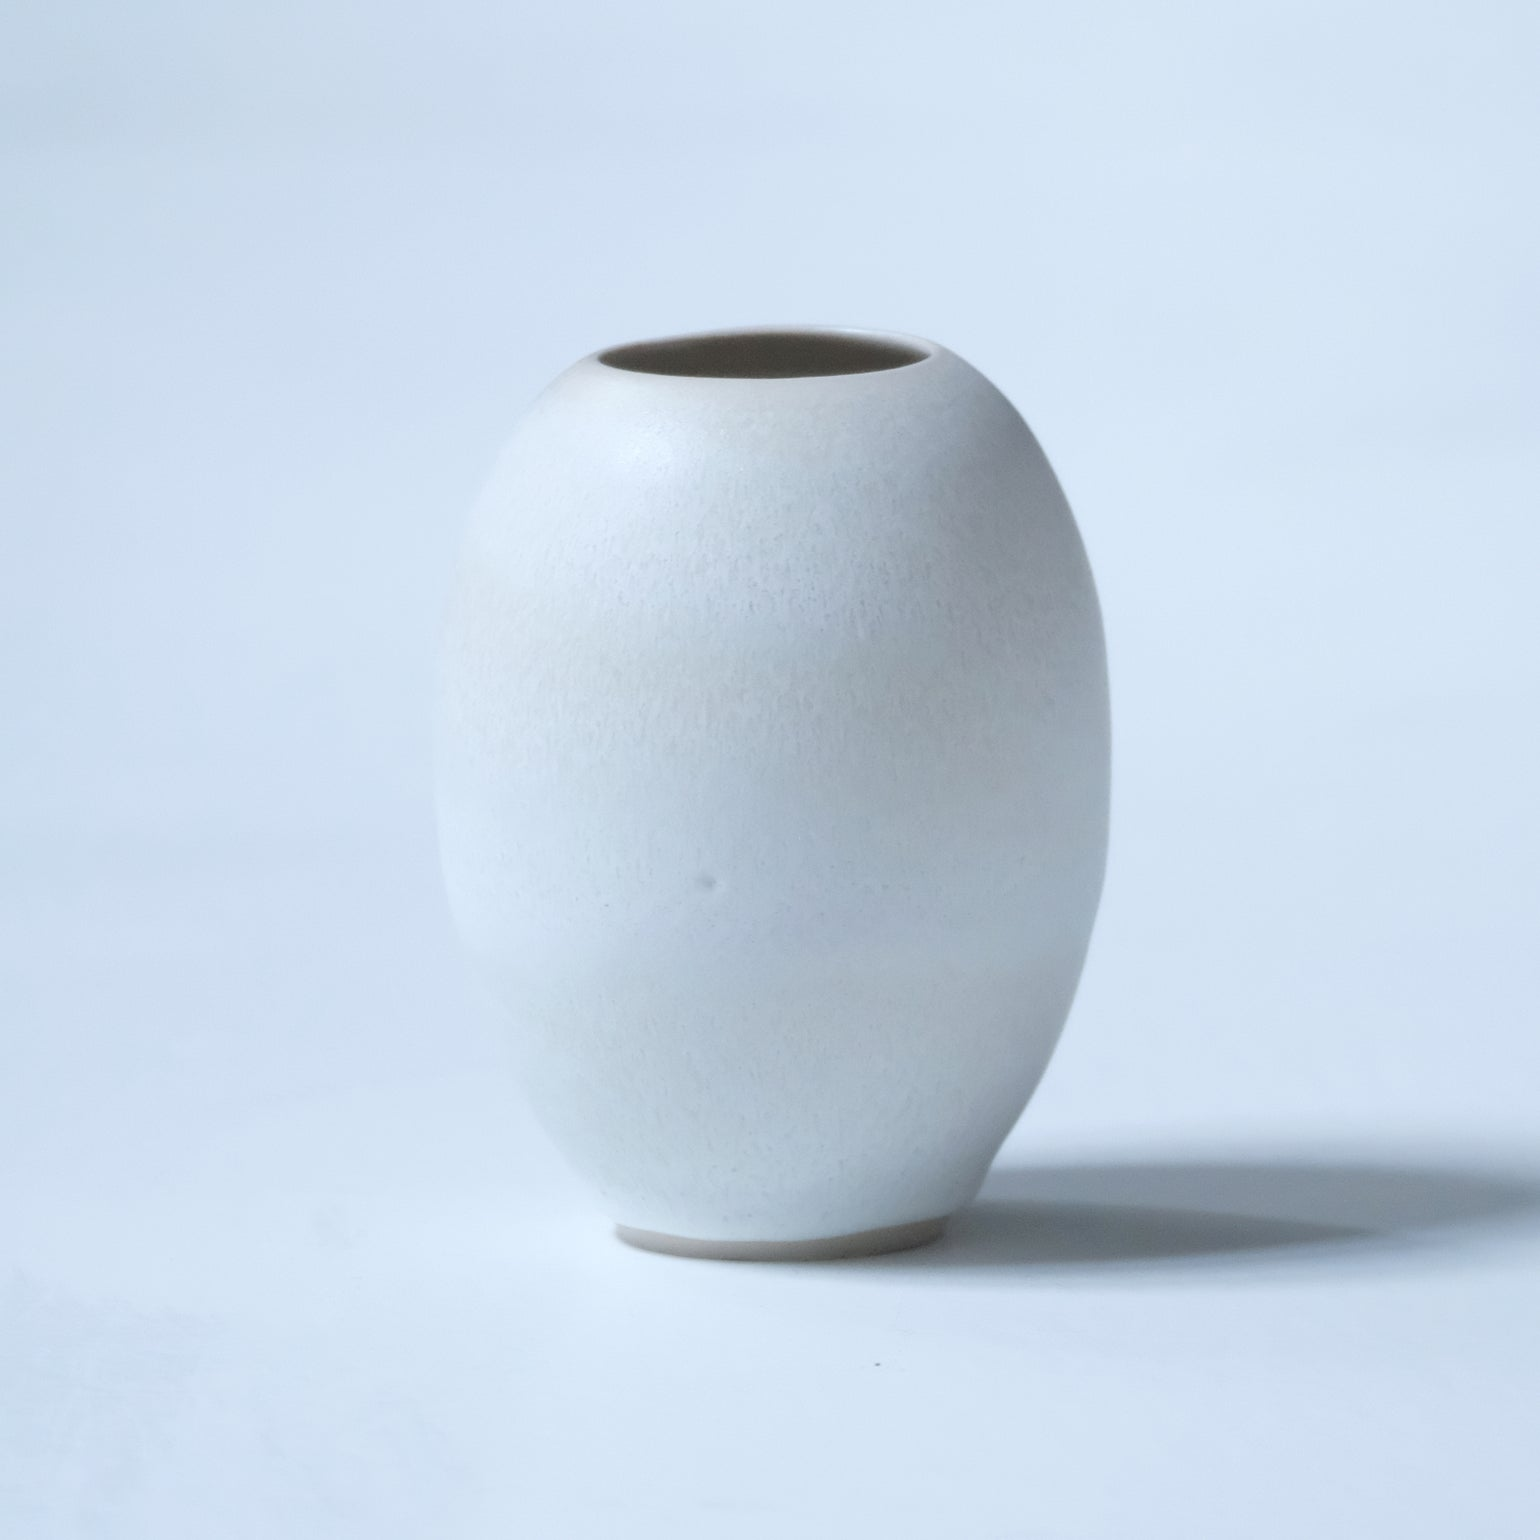 Image of SMALL OVAL SHAPED VASE IN FROSTED WHITE GLAZE